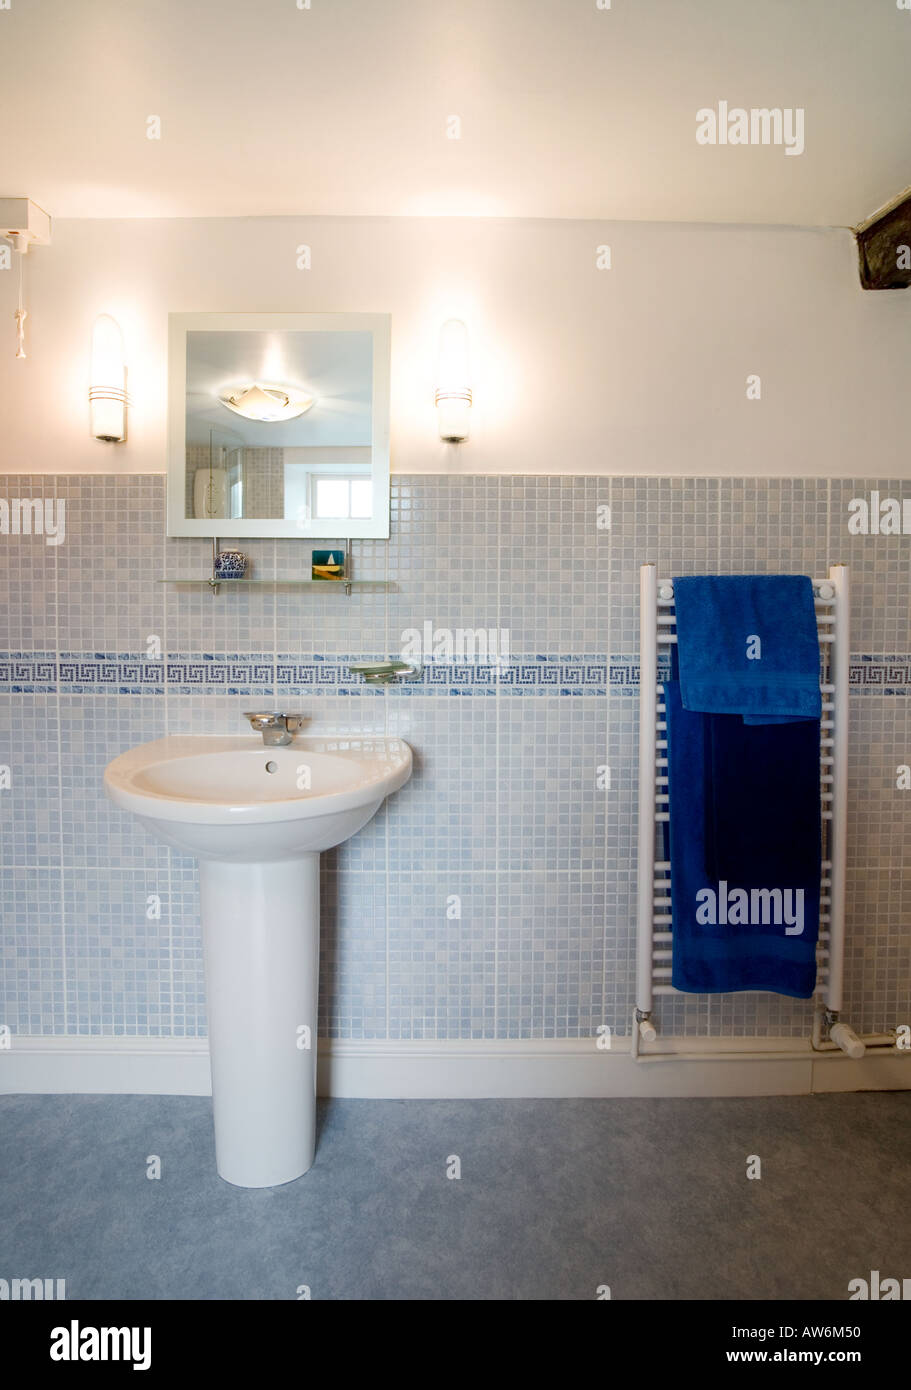 MODERN BATHROOM HAND BASIN WITH MIRROR AND WALL LIGHTS AND TOWEL RAIL WITH  BLUE TOWELS